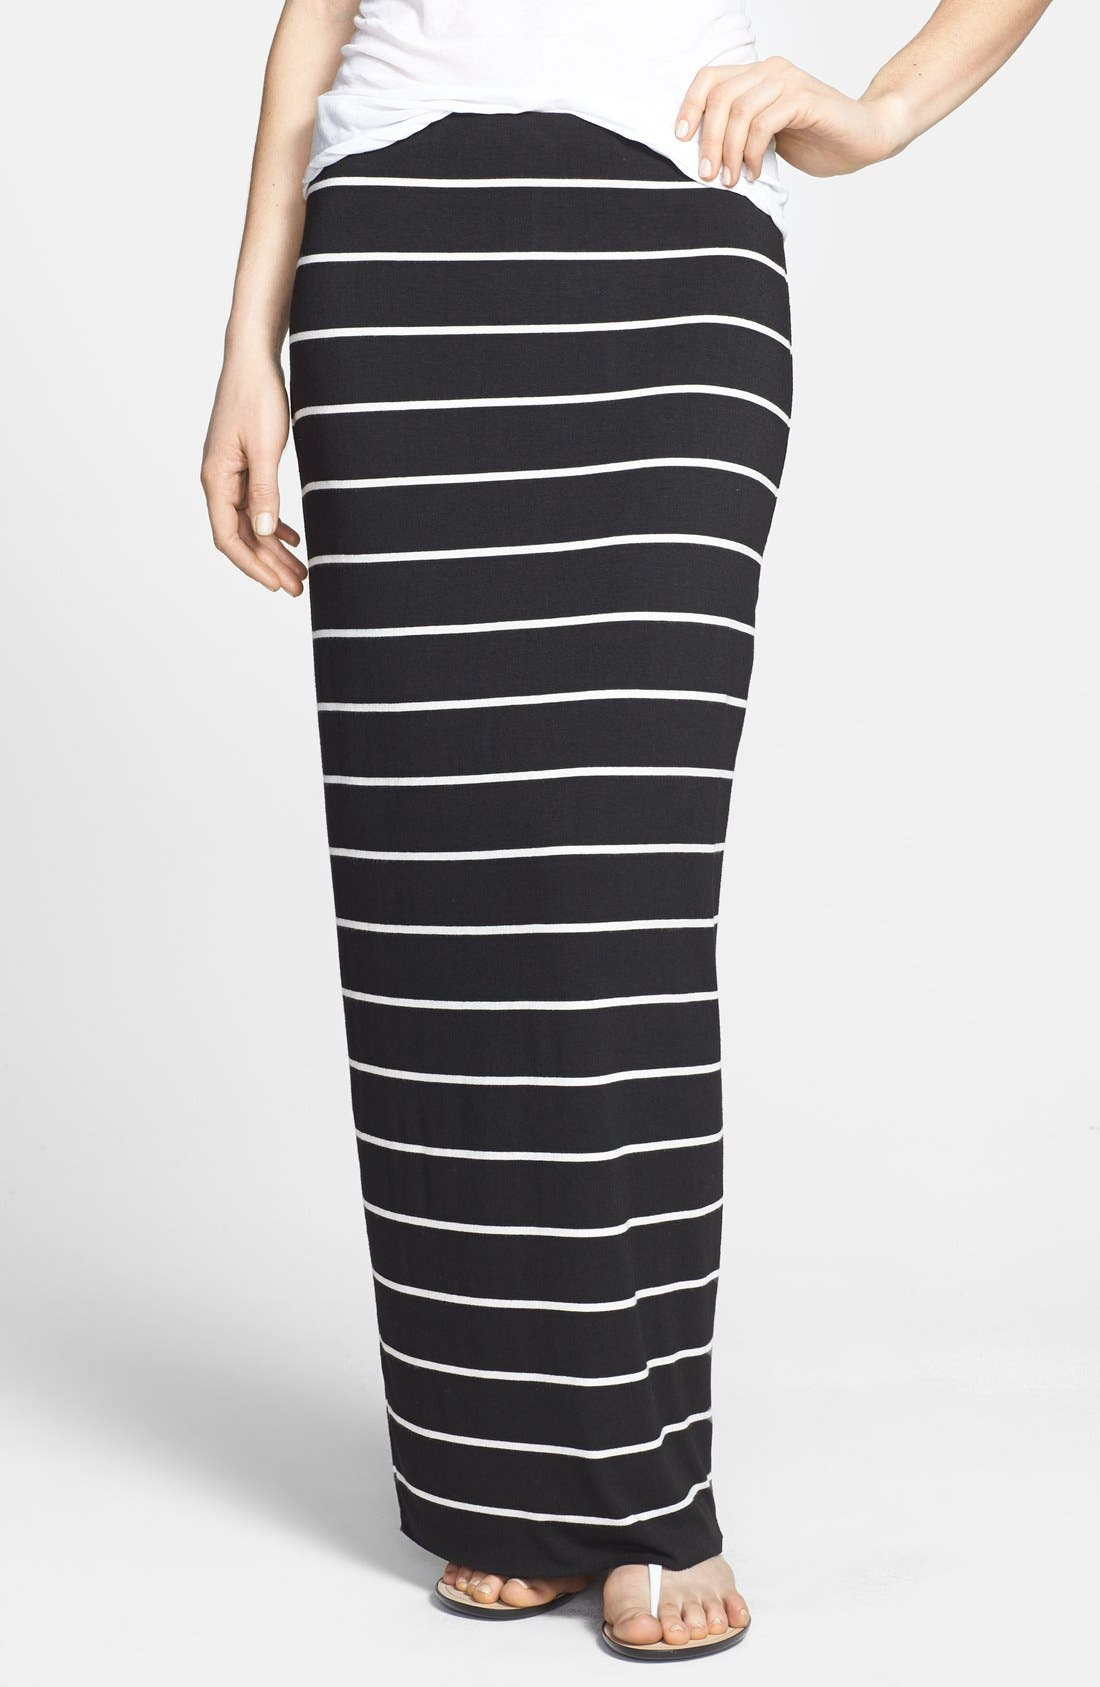 Alternate Image 1 Selected - Bailey 44 'Masakela' Stripe Maxi Skirt